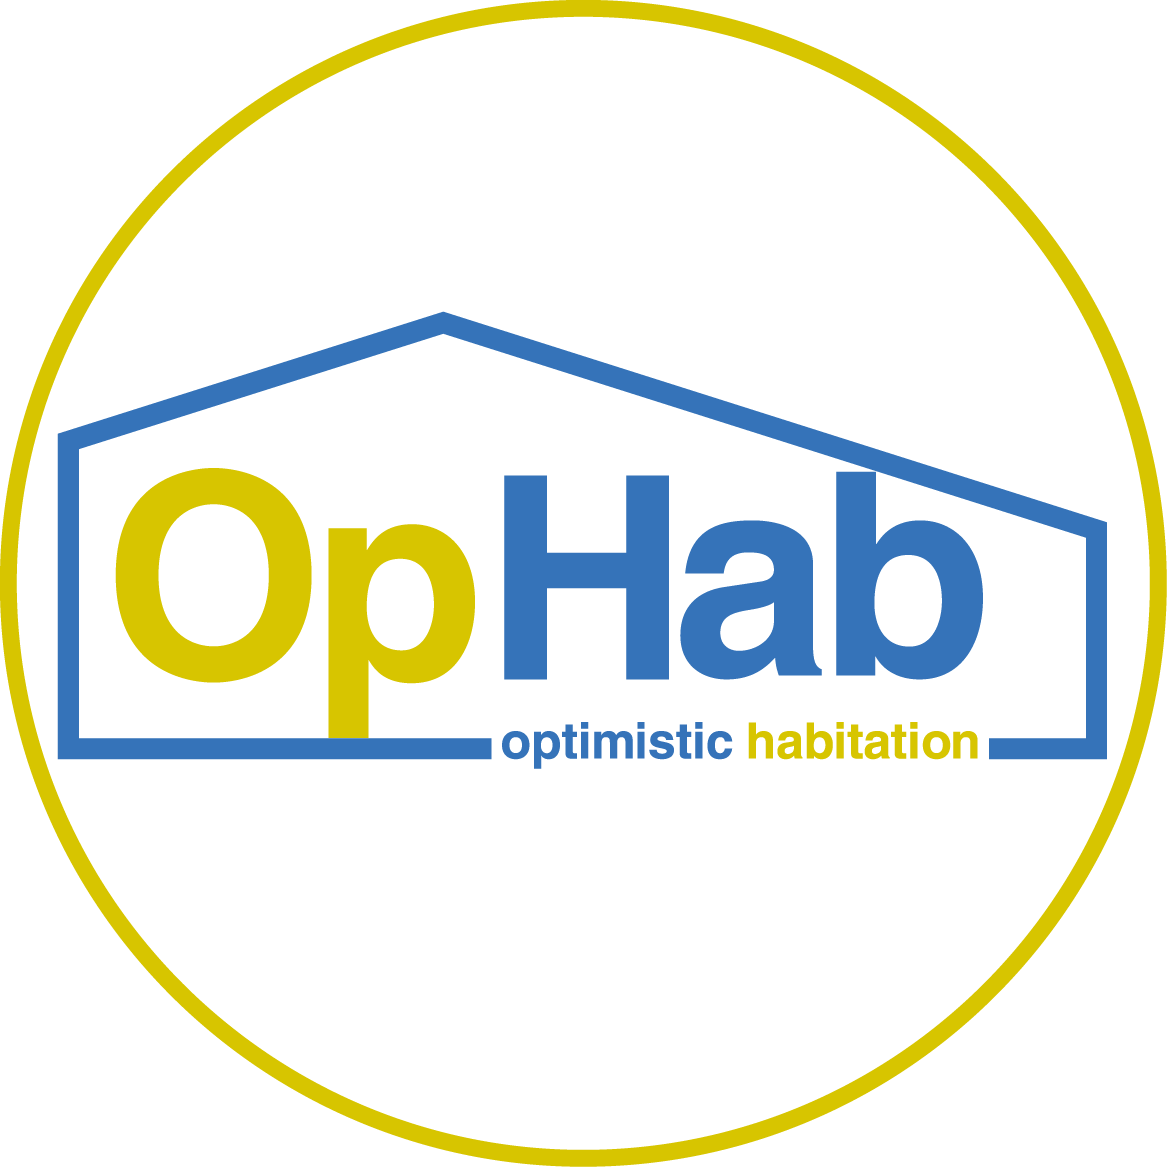 Optimistic Habitation